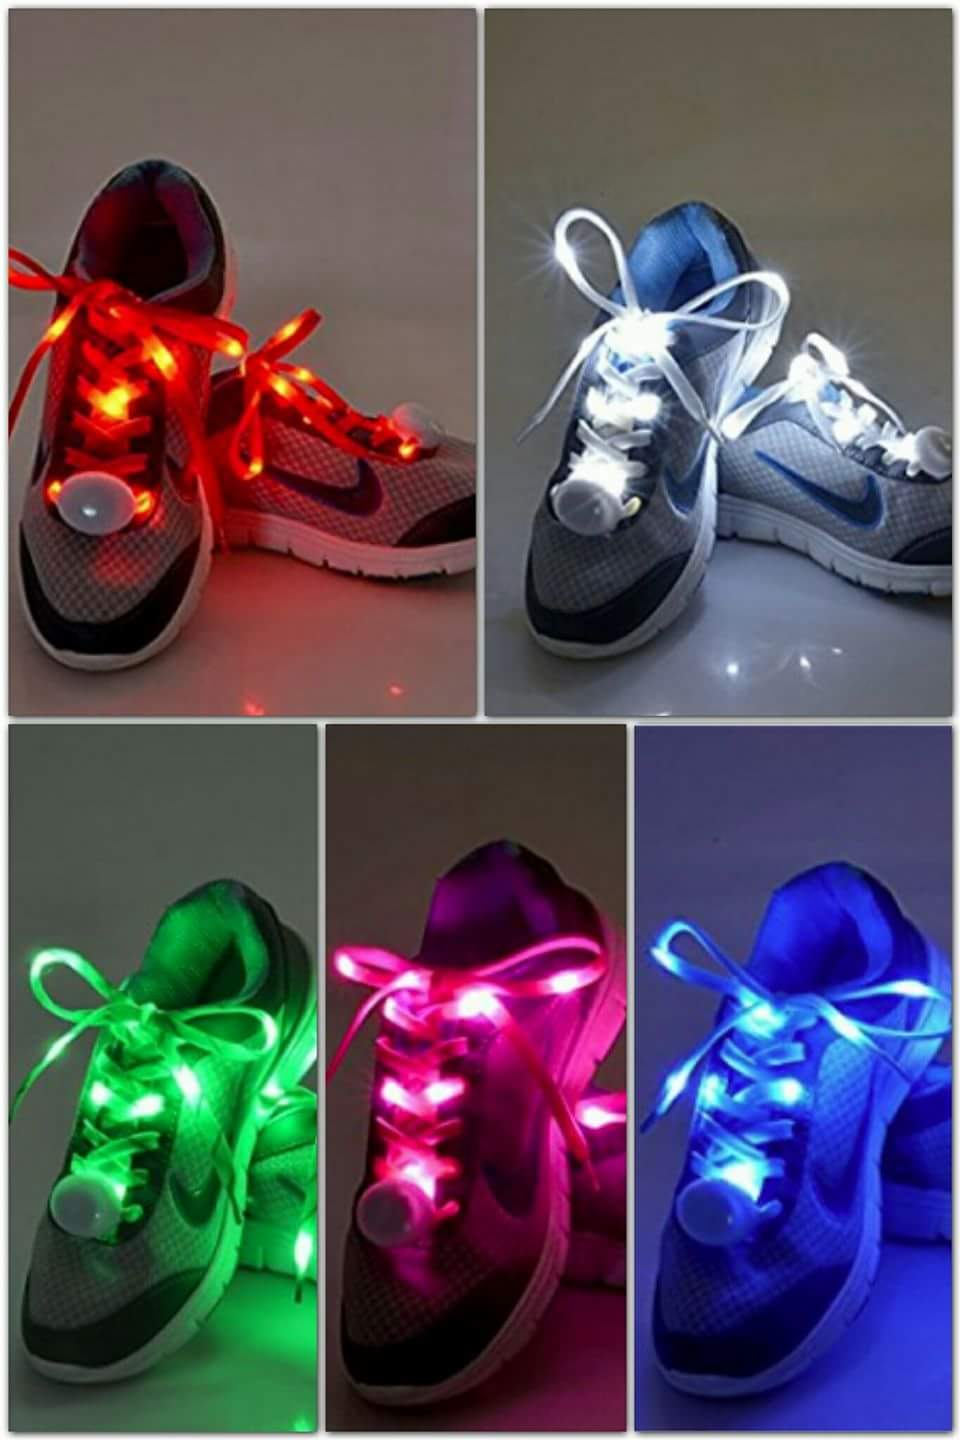 Flammi LED Nylon Shoelaces Light Up Shoe Laces with 3 Modes in 5 Colors Disco Flash Lighting the Night for Party Hip-hop Dancing Cycling Hiking Skating